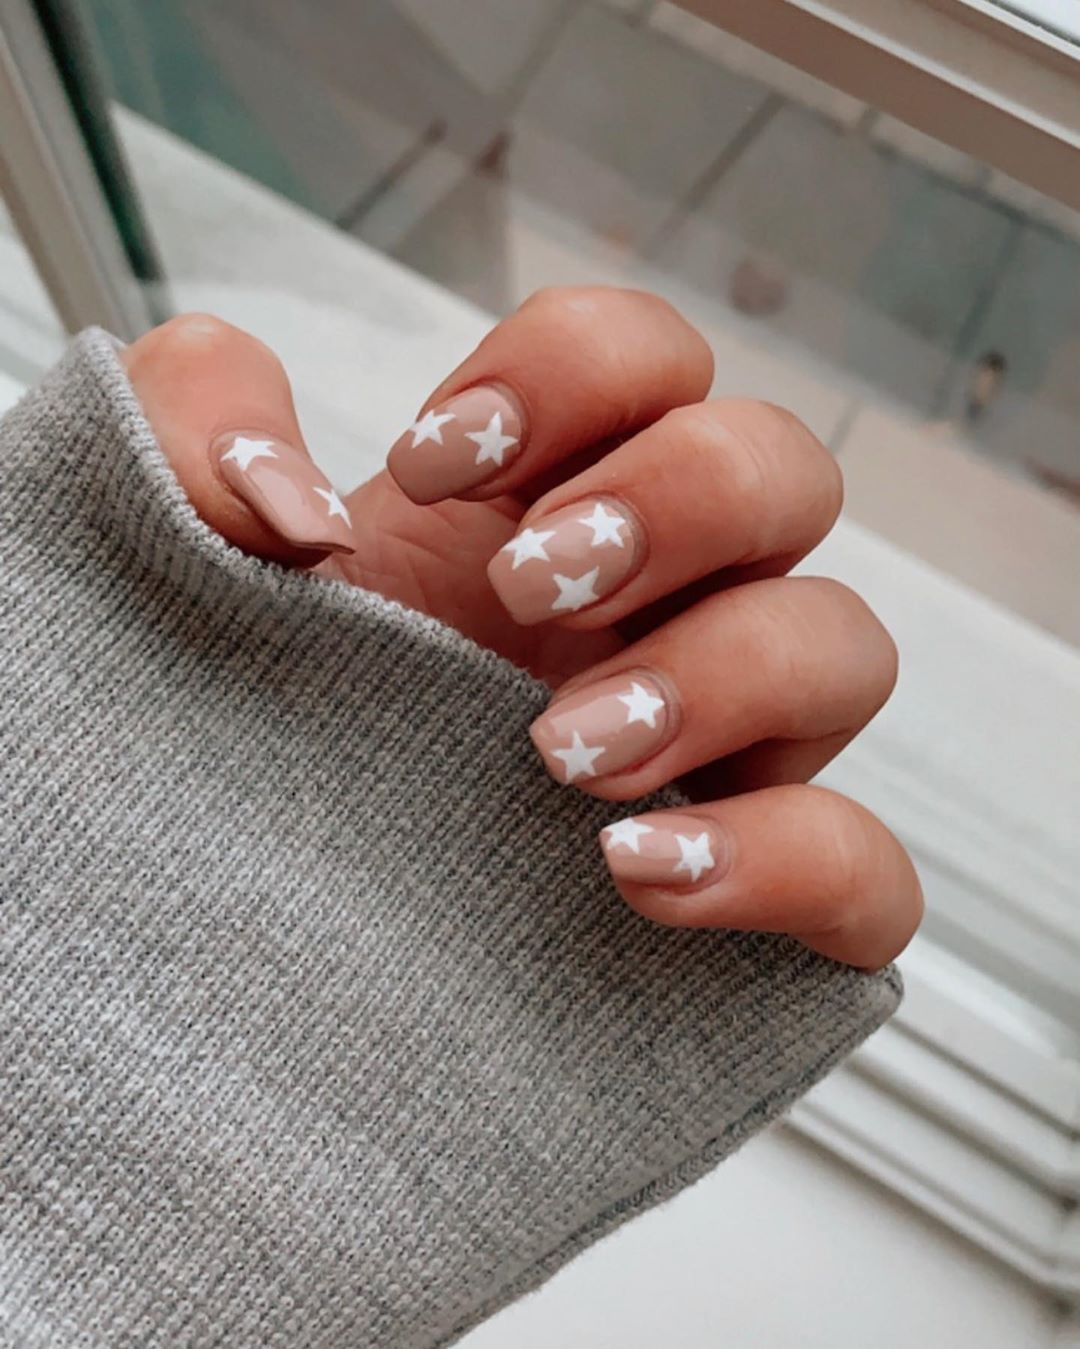 20 Off Your First Mani Pedi With Lesalon In London 5 Star Nail Services In Homes Hotels And Offices Discount Code Pint20 Nail Designs Gel Nails Oval Nails